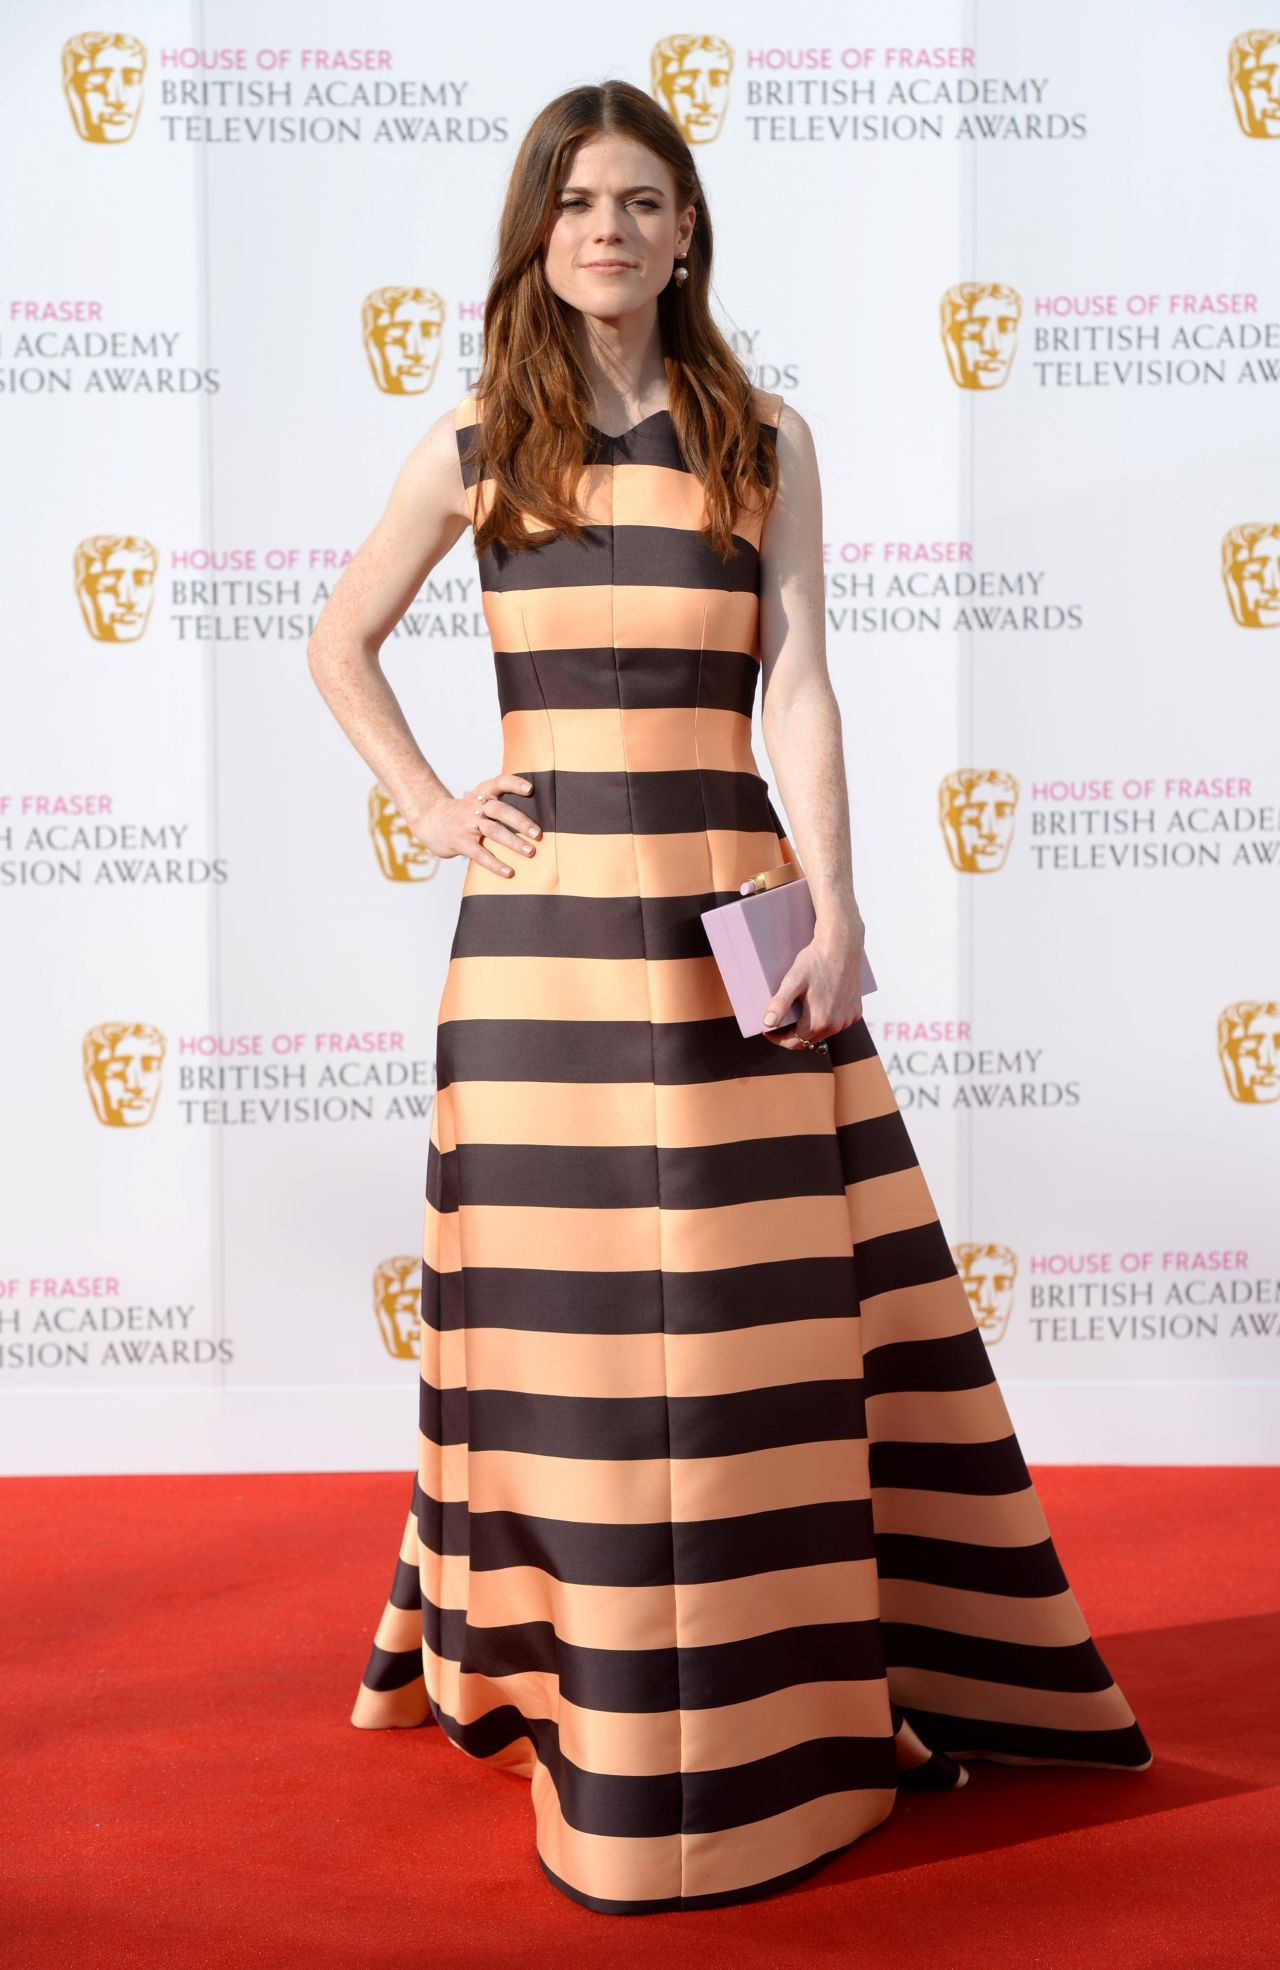 BAFTA Red Carpet Beauties Paul Edmonds